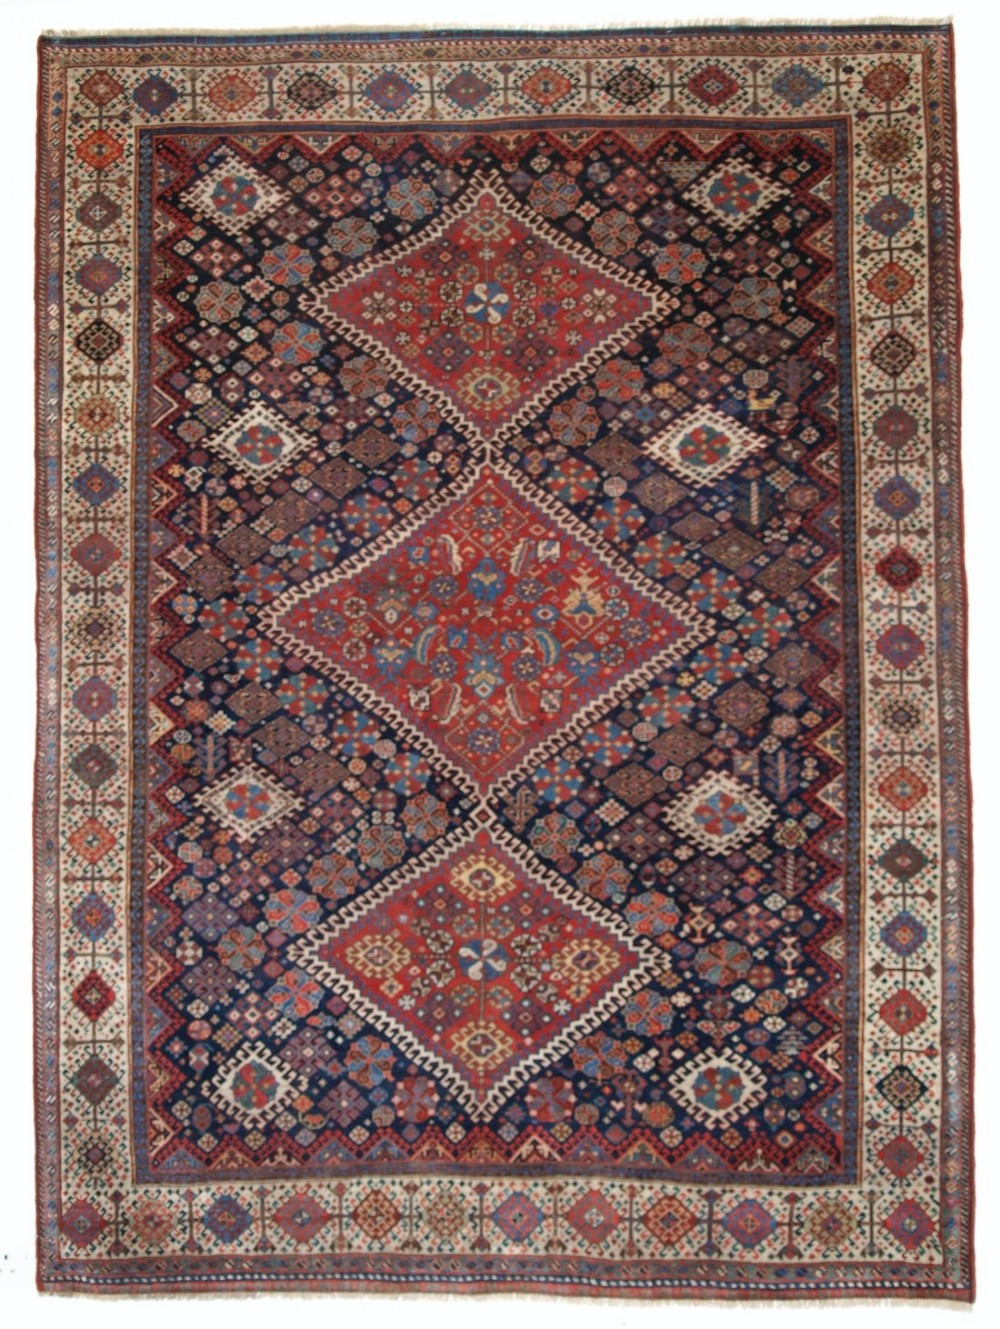 antique south west persian qashqai rug shekarlu border triple medallion superb circa 1860